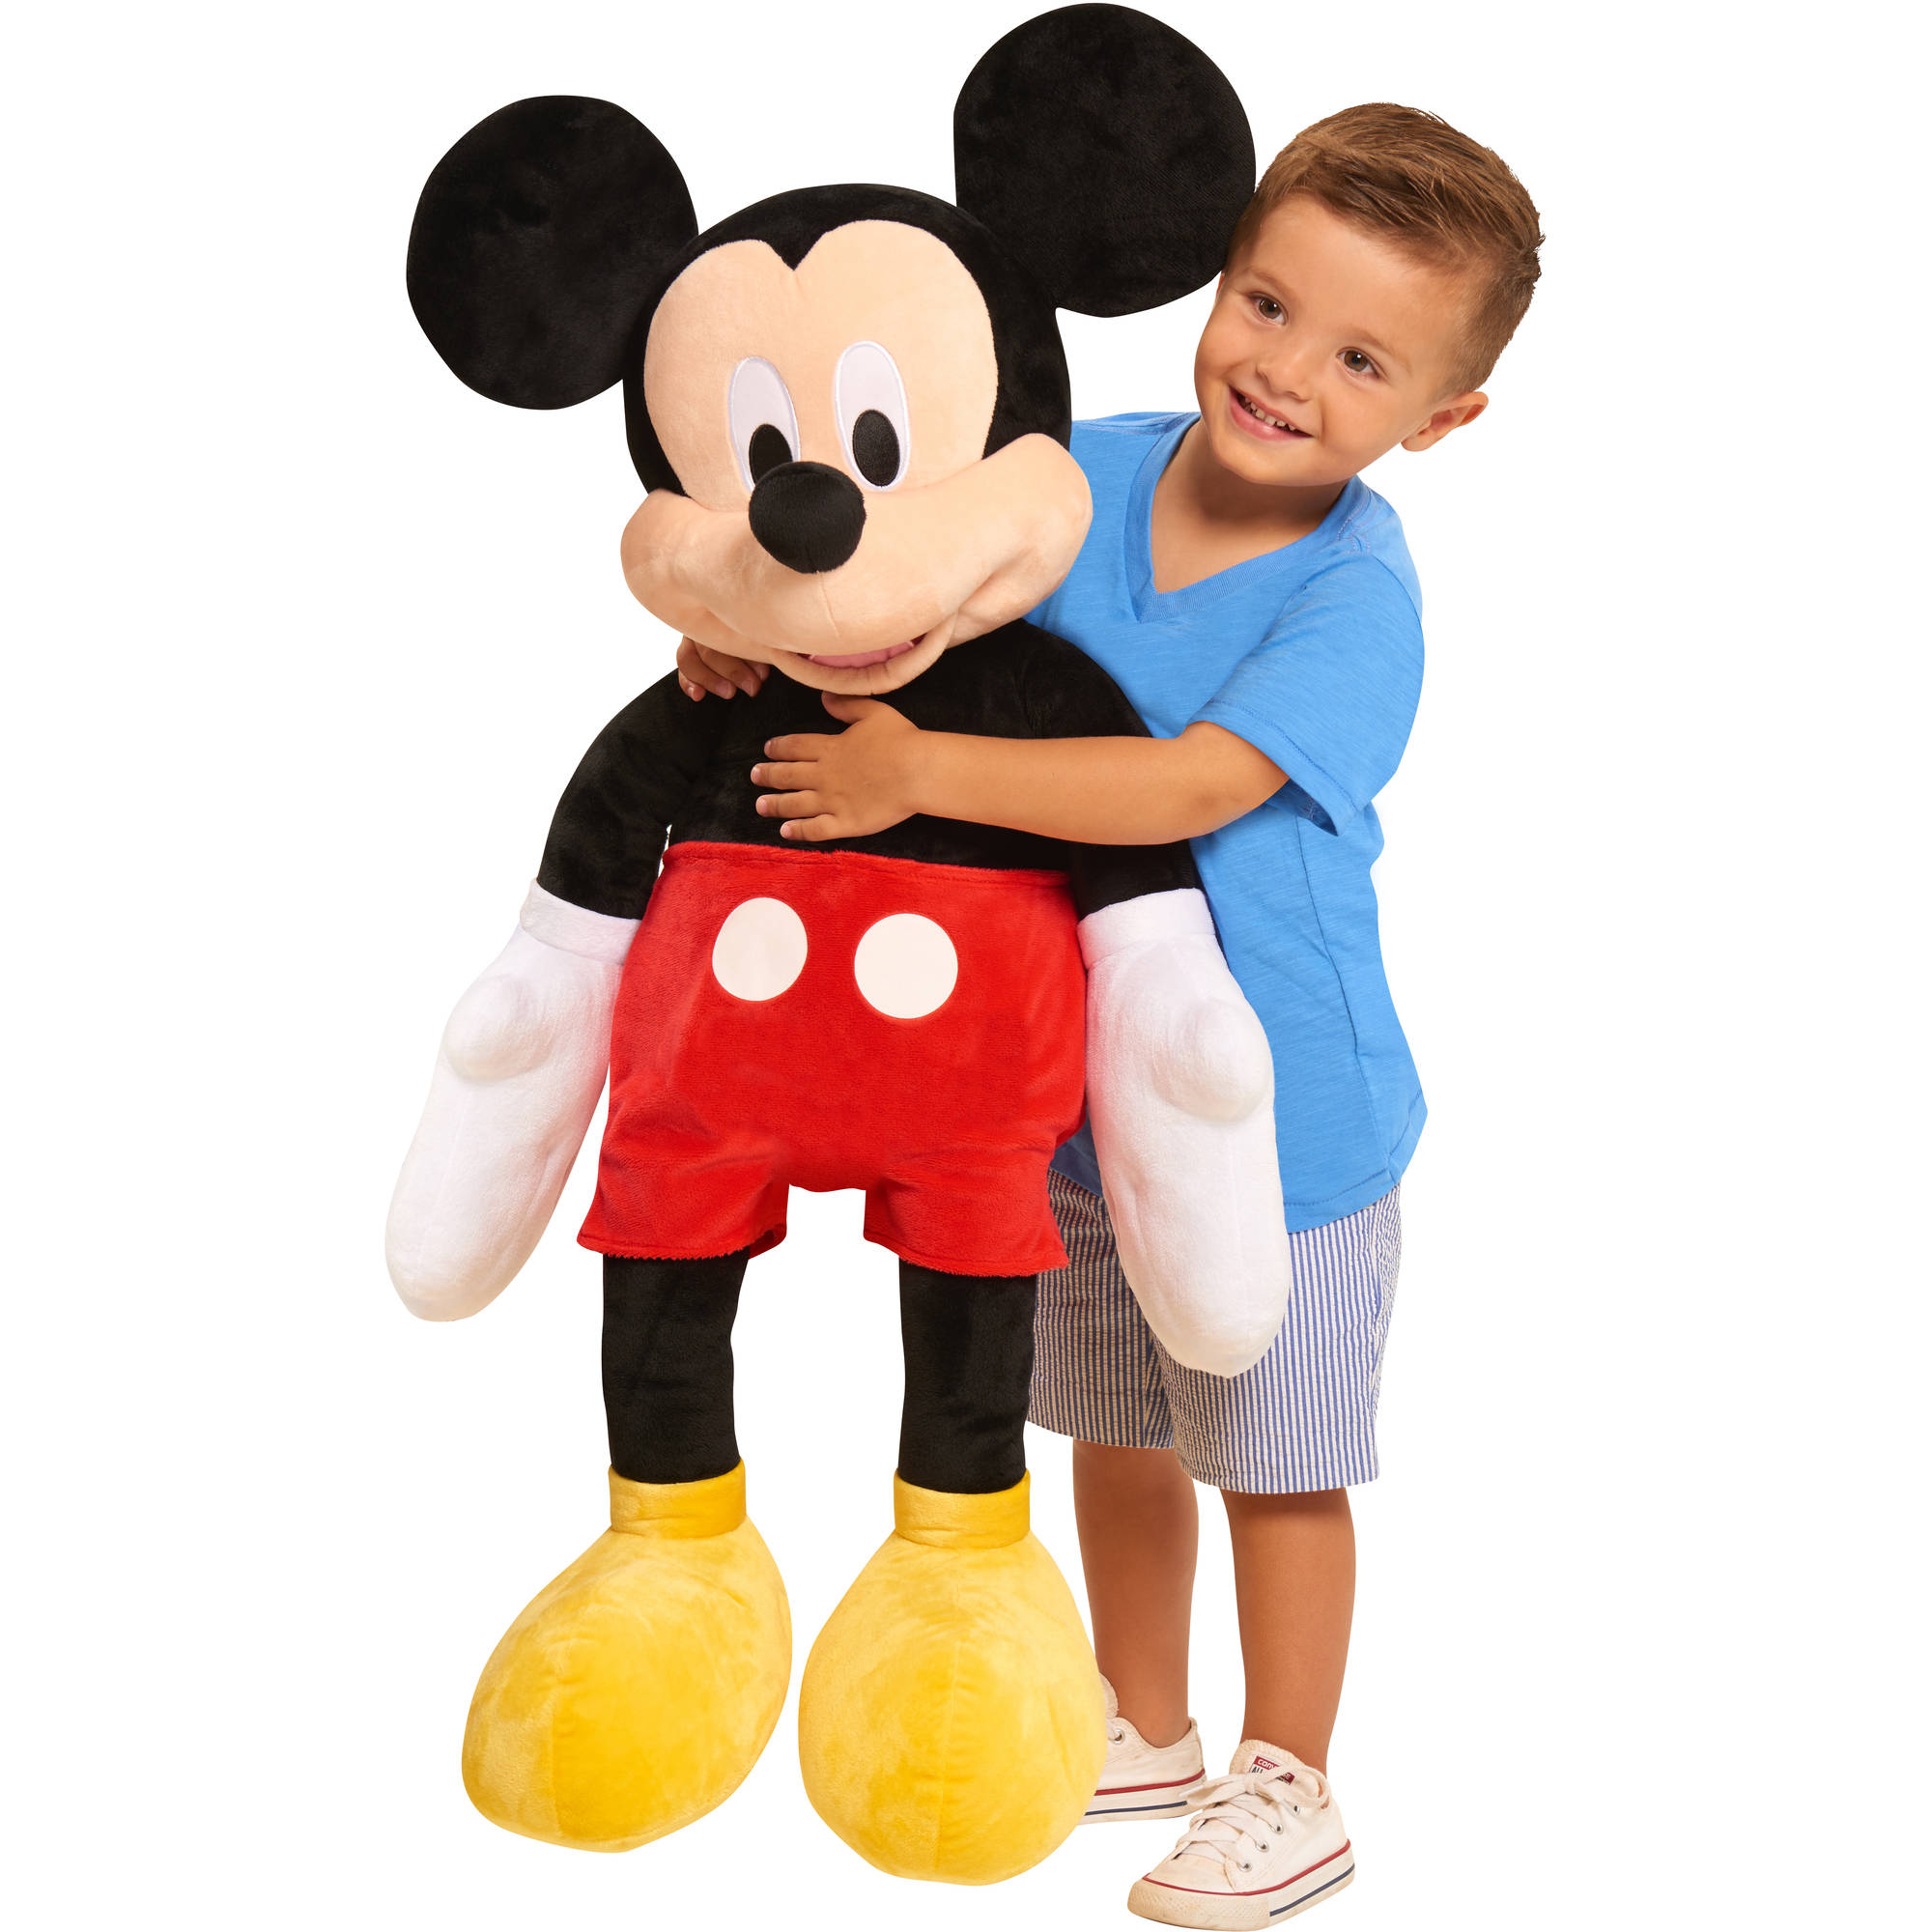 "Disney Giant Character 40"" Plush, Mickey"